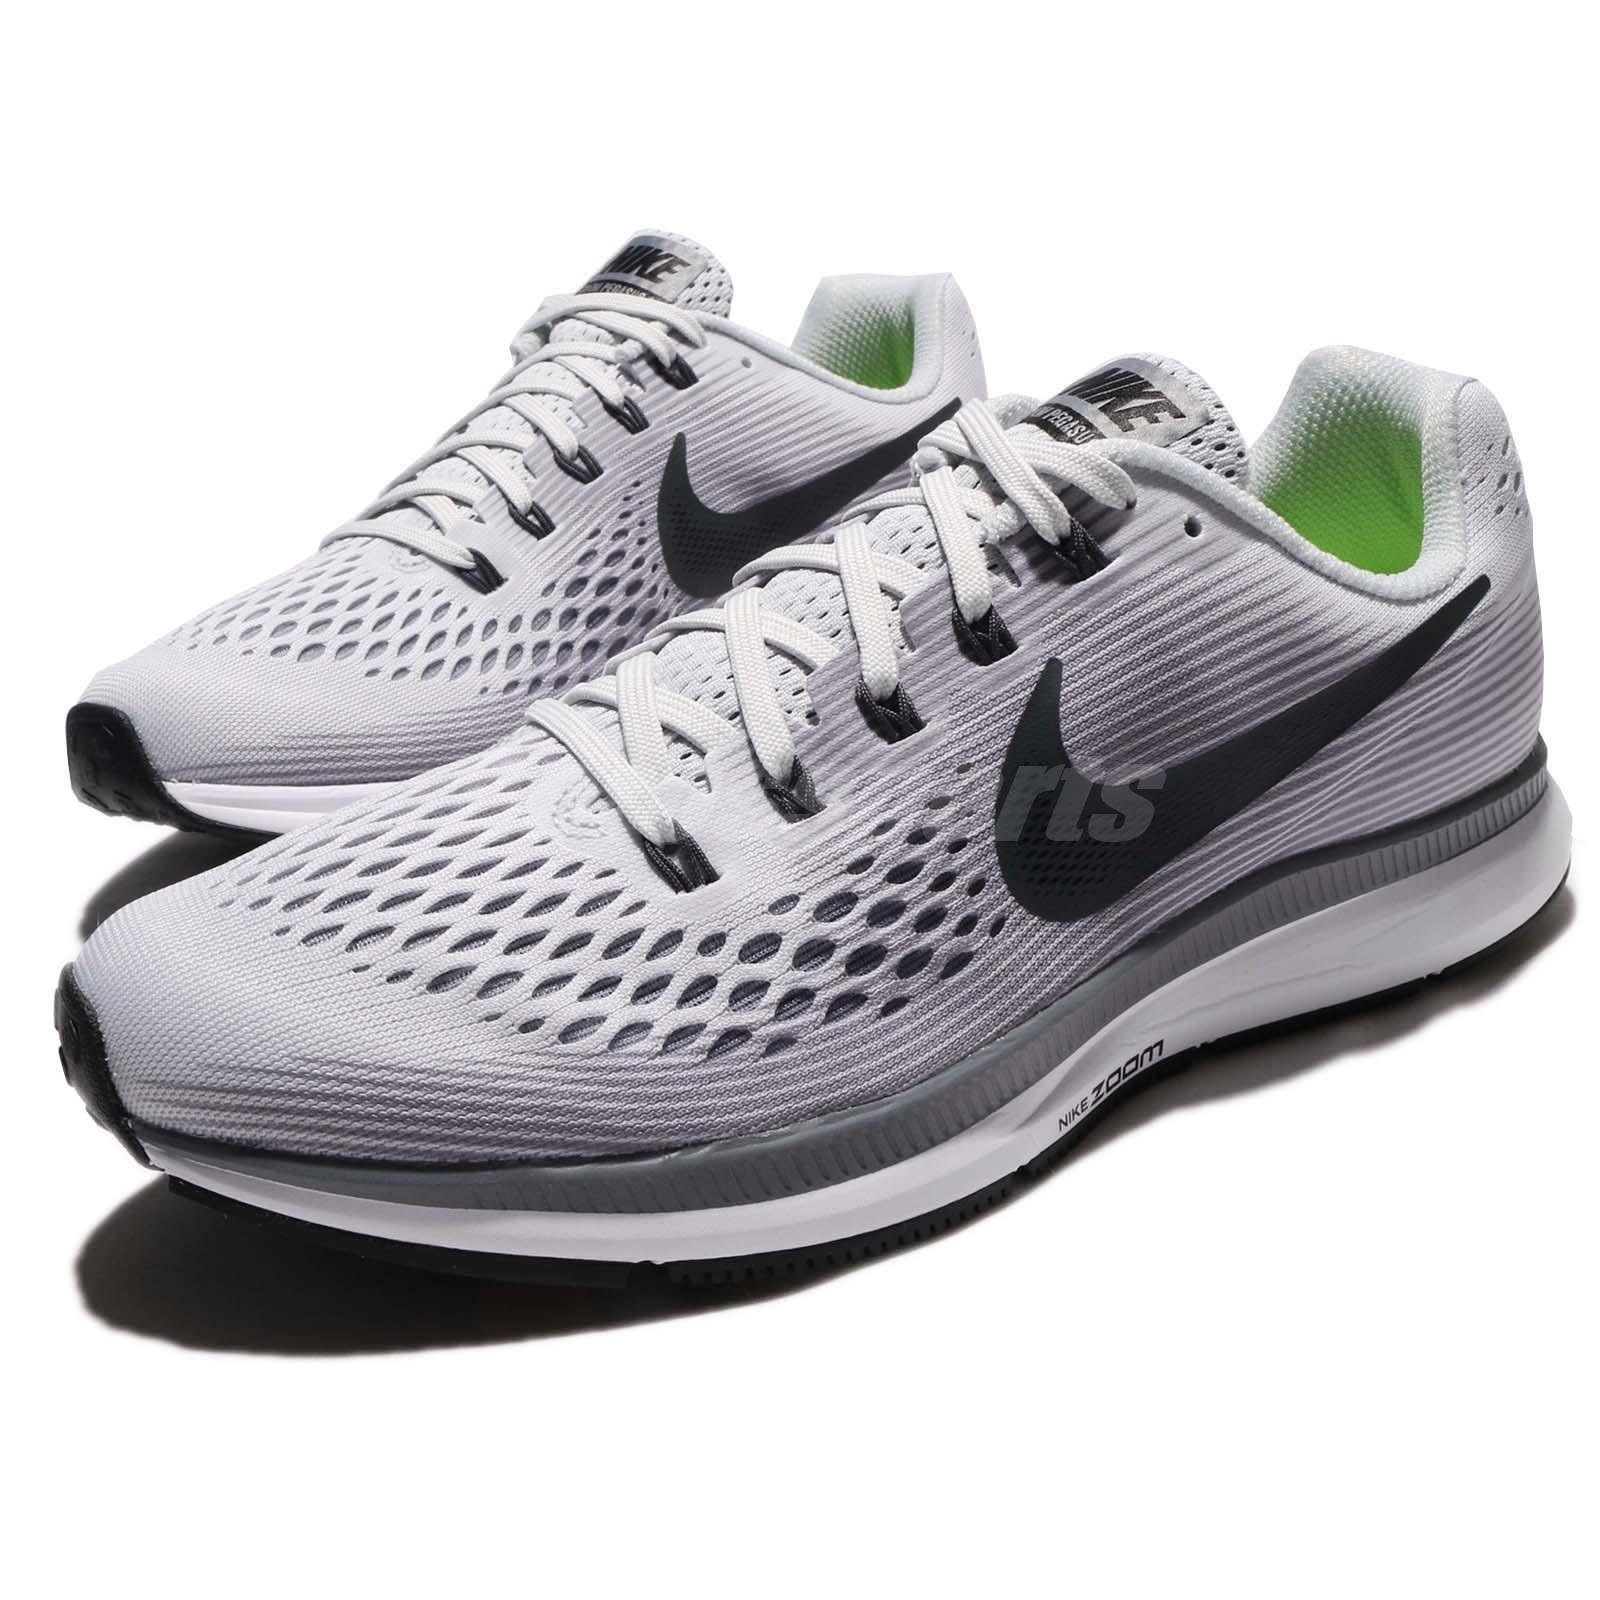 size 40 a745c 04482 Details about Nike Air Zoom Pegasus 34 Pure Platinum Anthracite Men Running  Shoes 880555-010